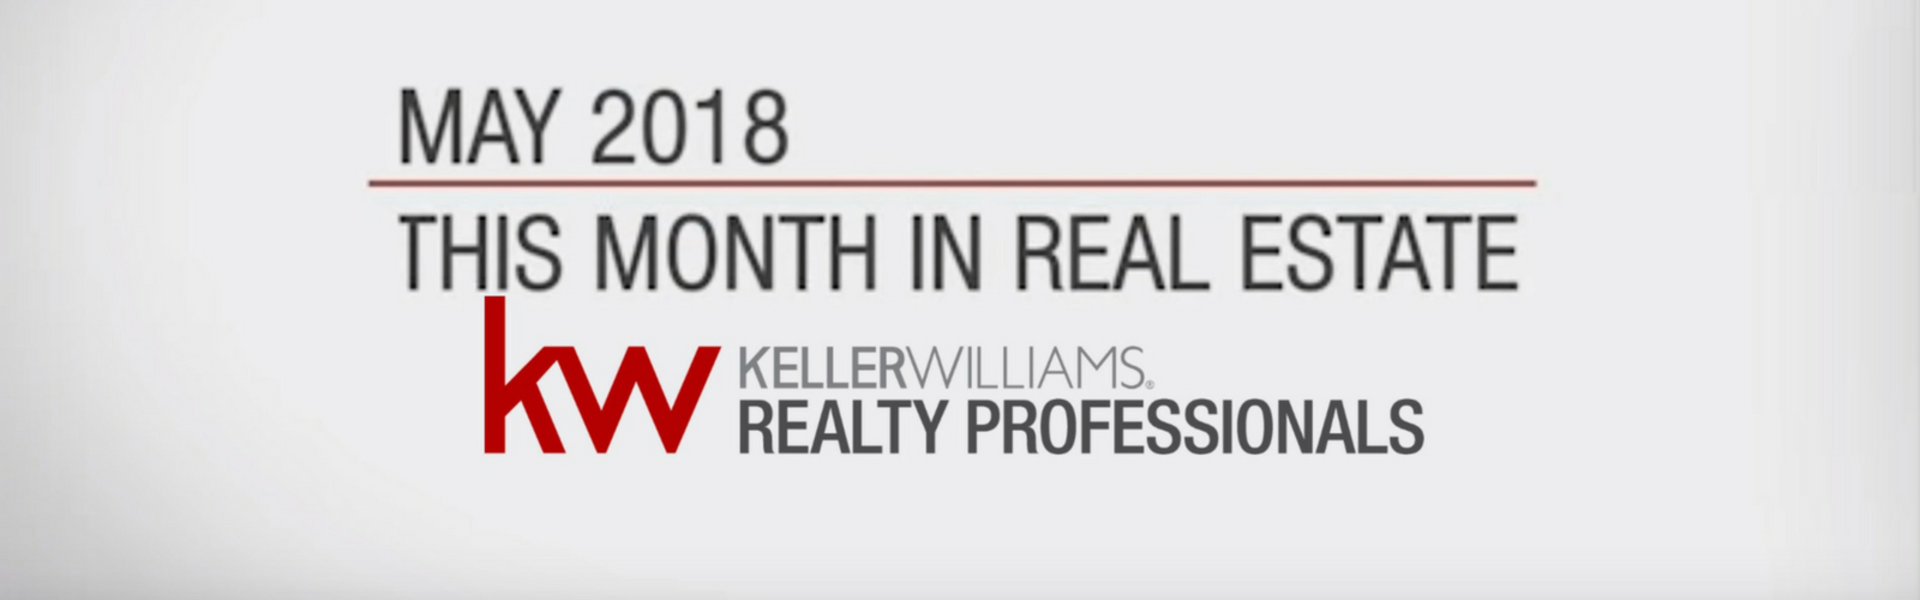 This Month In Real Estate: May 2018